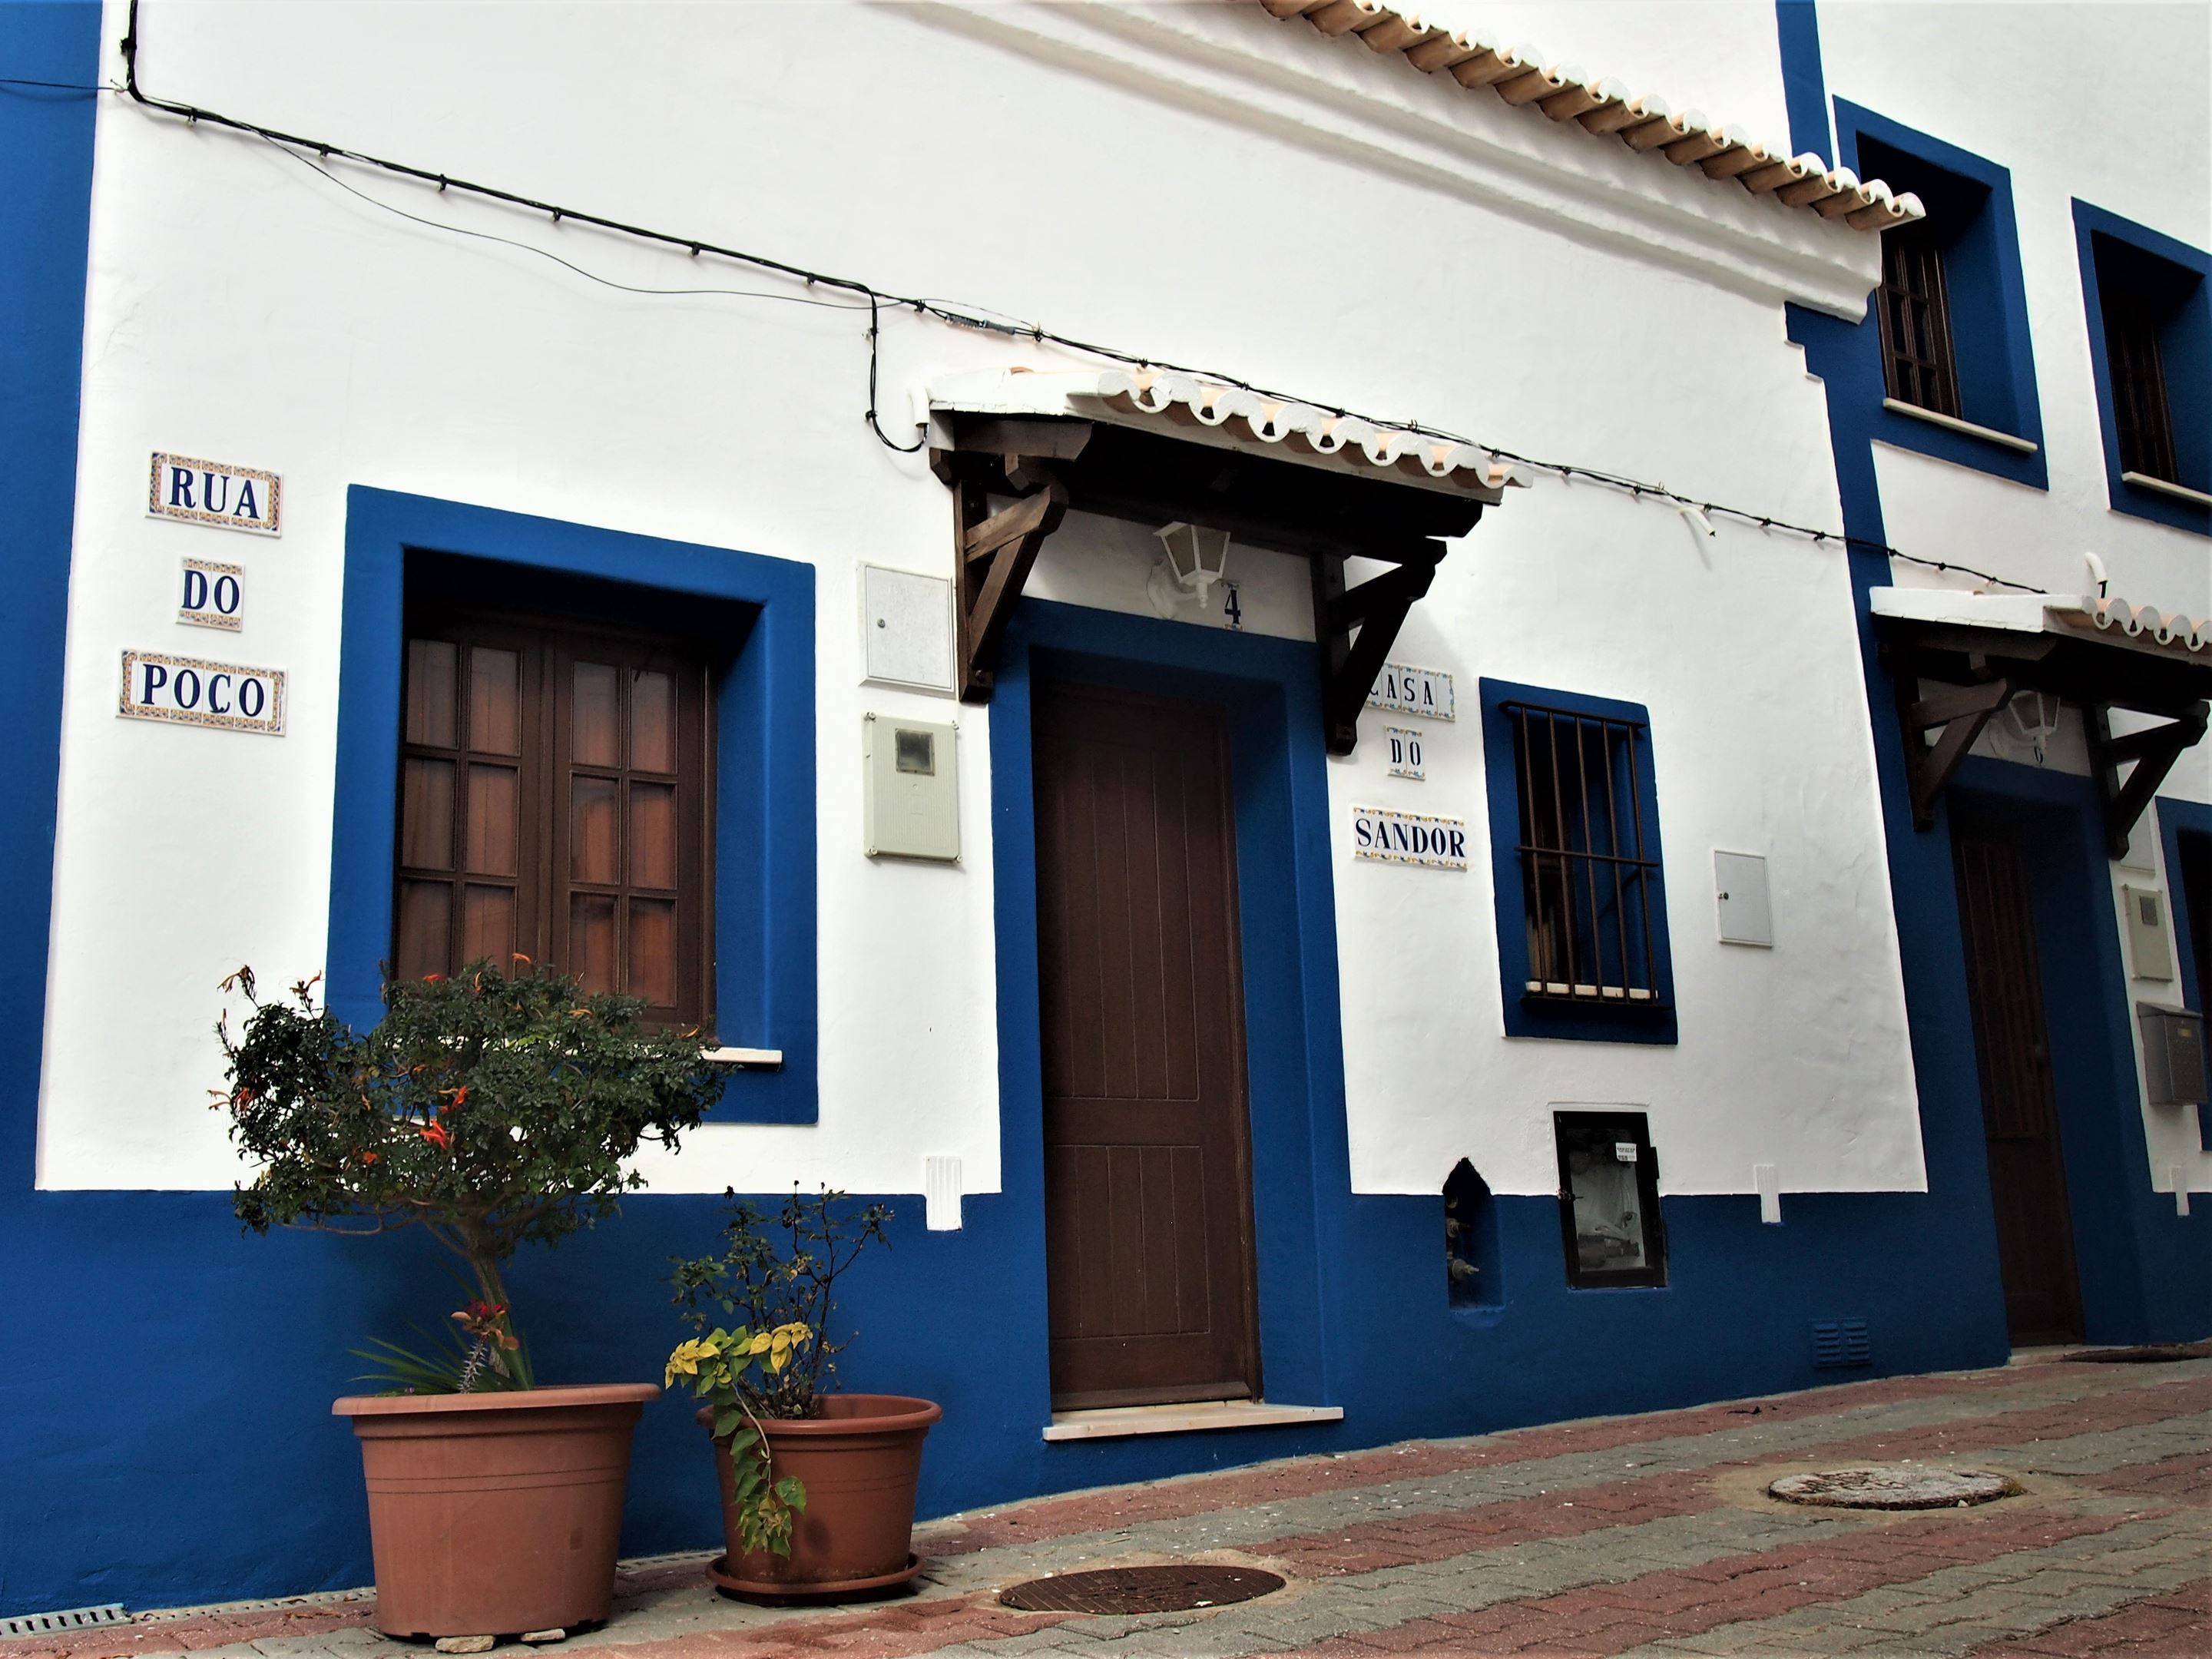 Typical Algarvean house in Burgau, Algarve